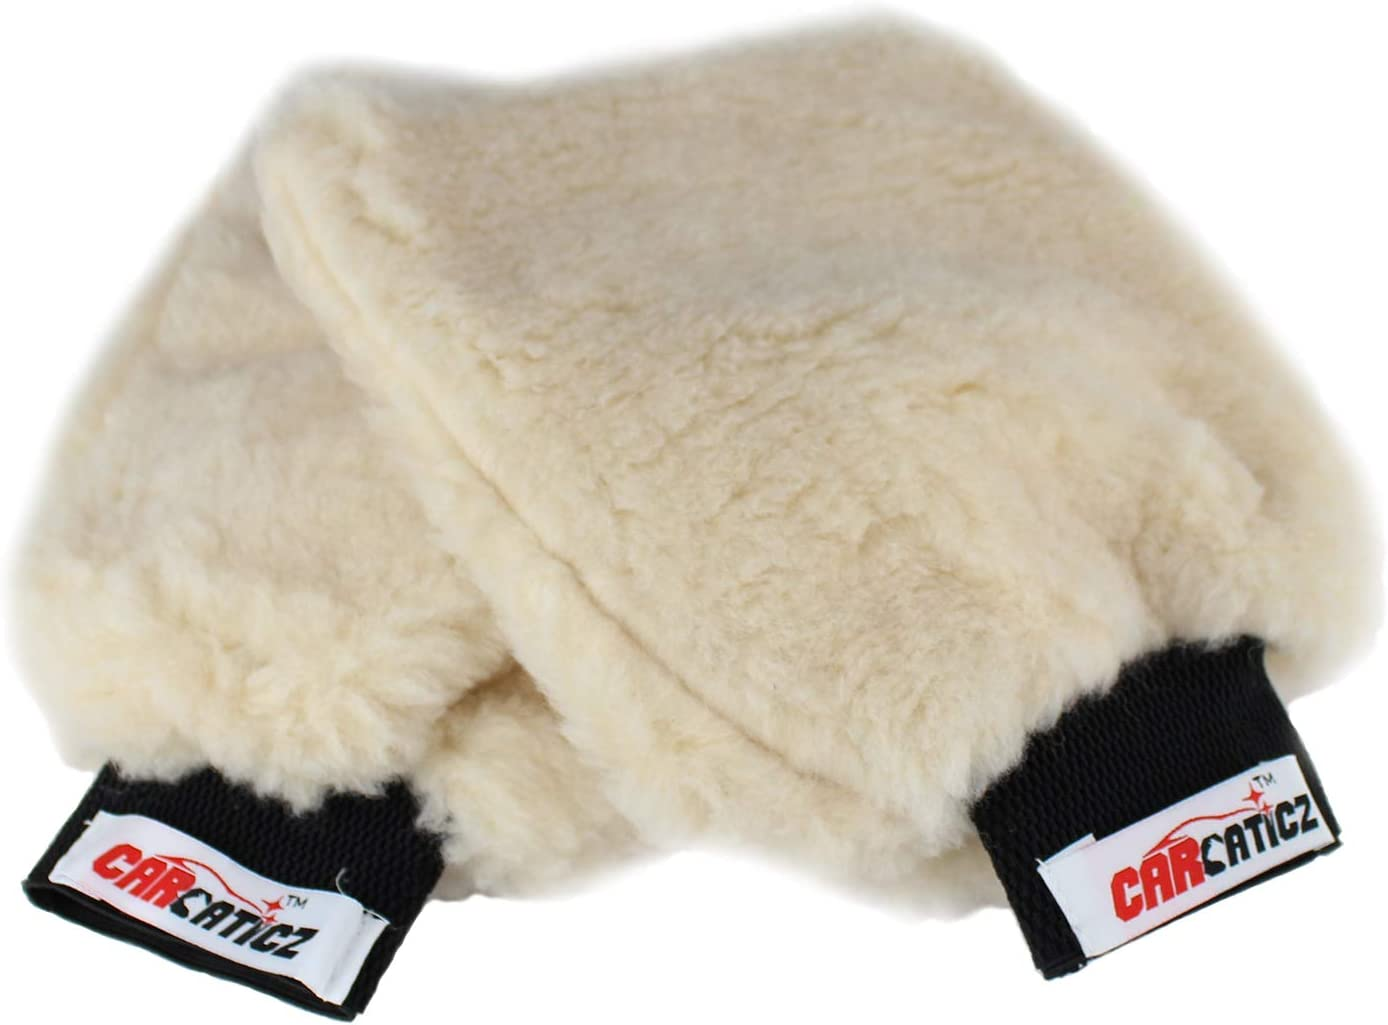 CARCATICZ Synthetic Sheepskin Lambswool Wash Mitt for Cars, SUV, Boats, RV, Home, Lint Free, Scratches Free Cleaning Glove, 100% Polyester, Beige Color, 2 Pack